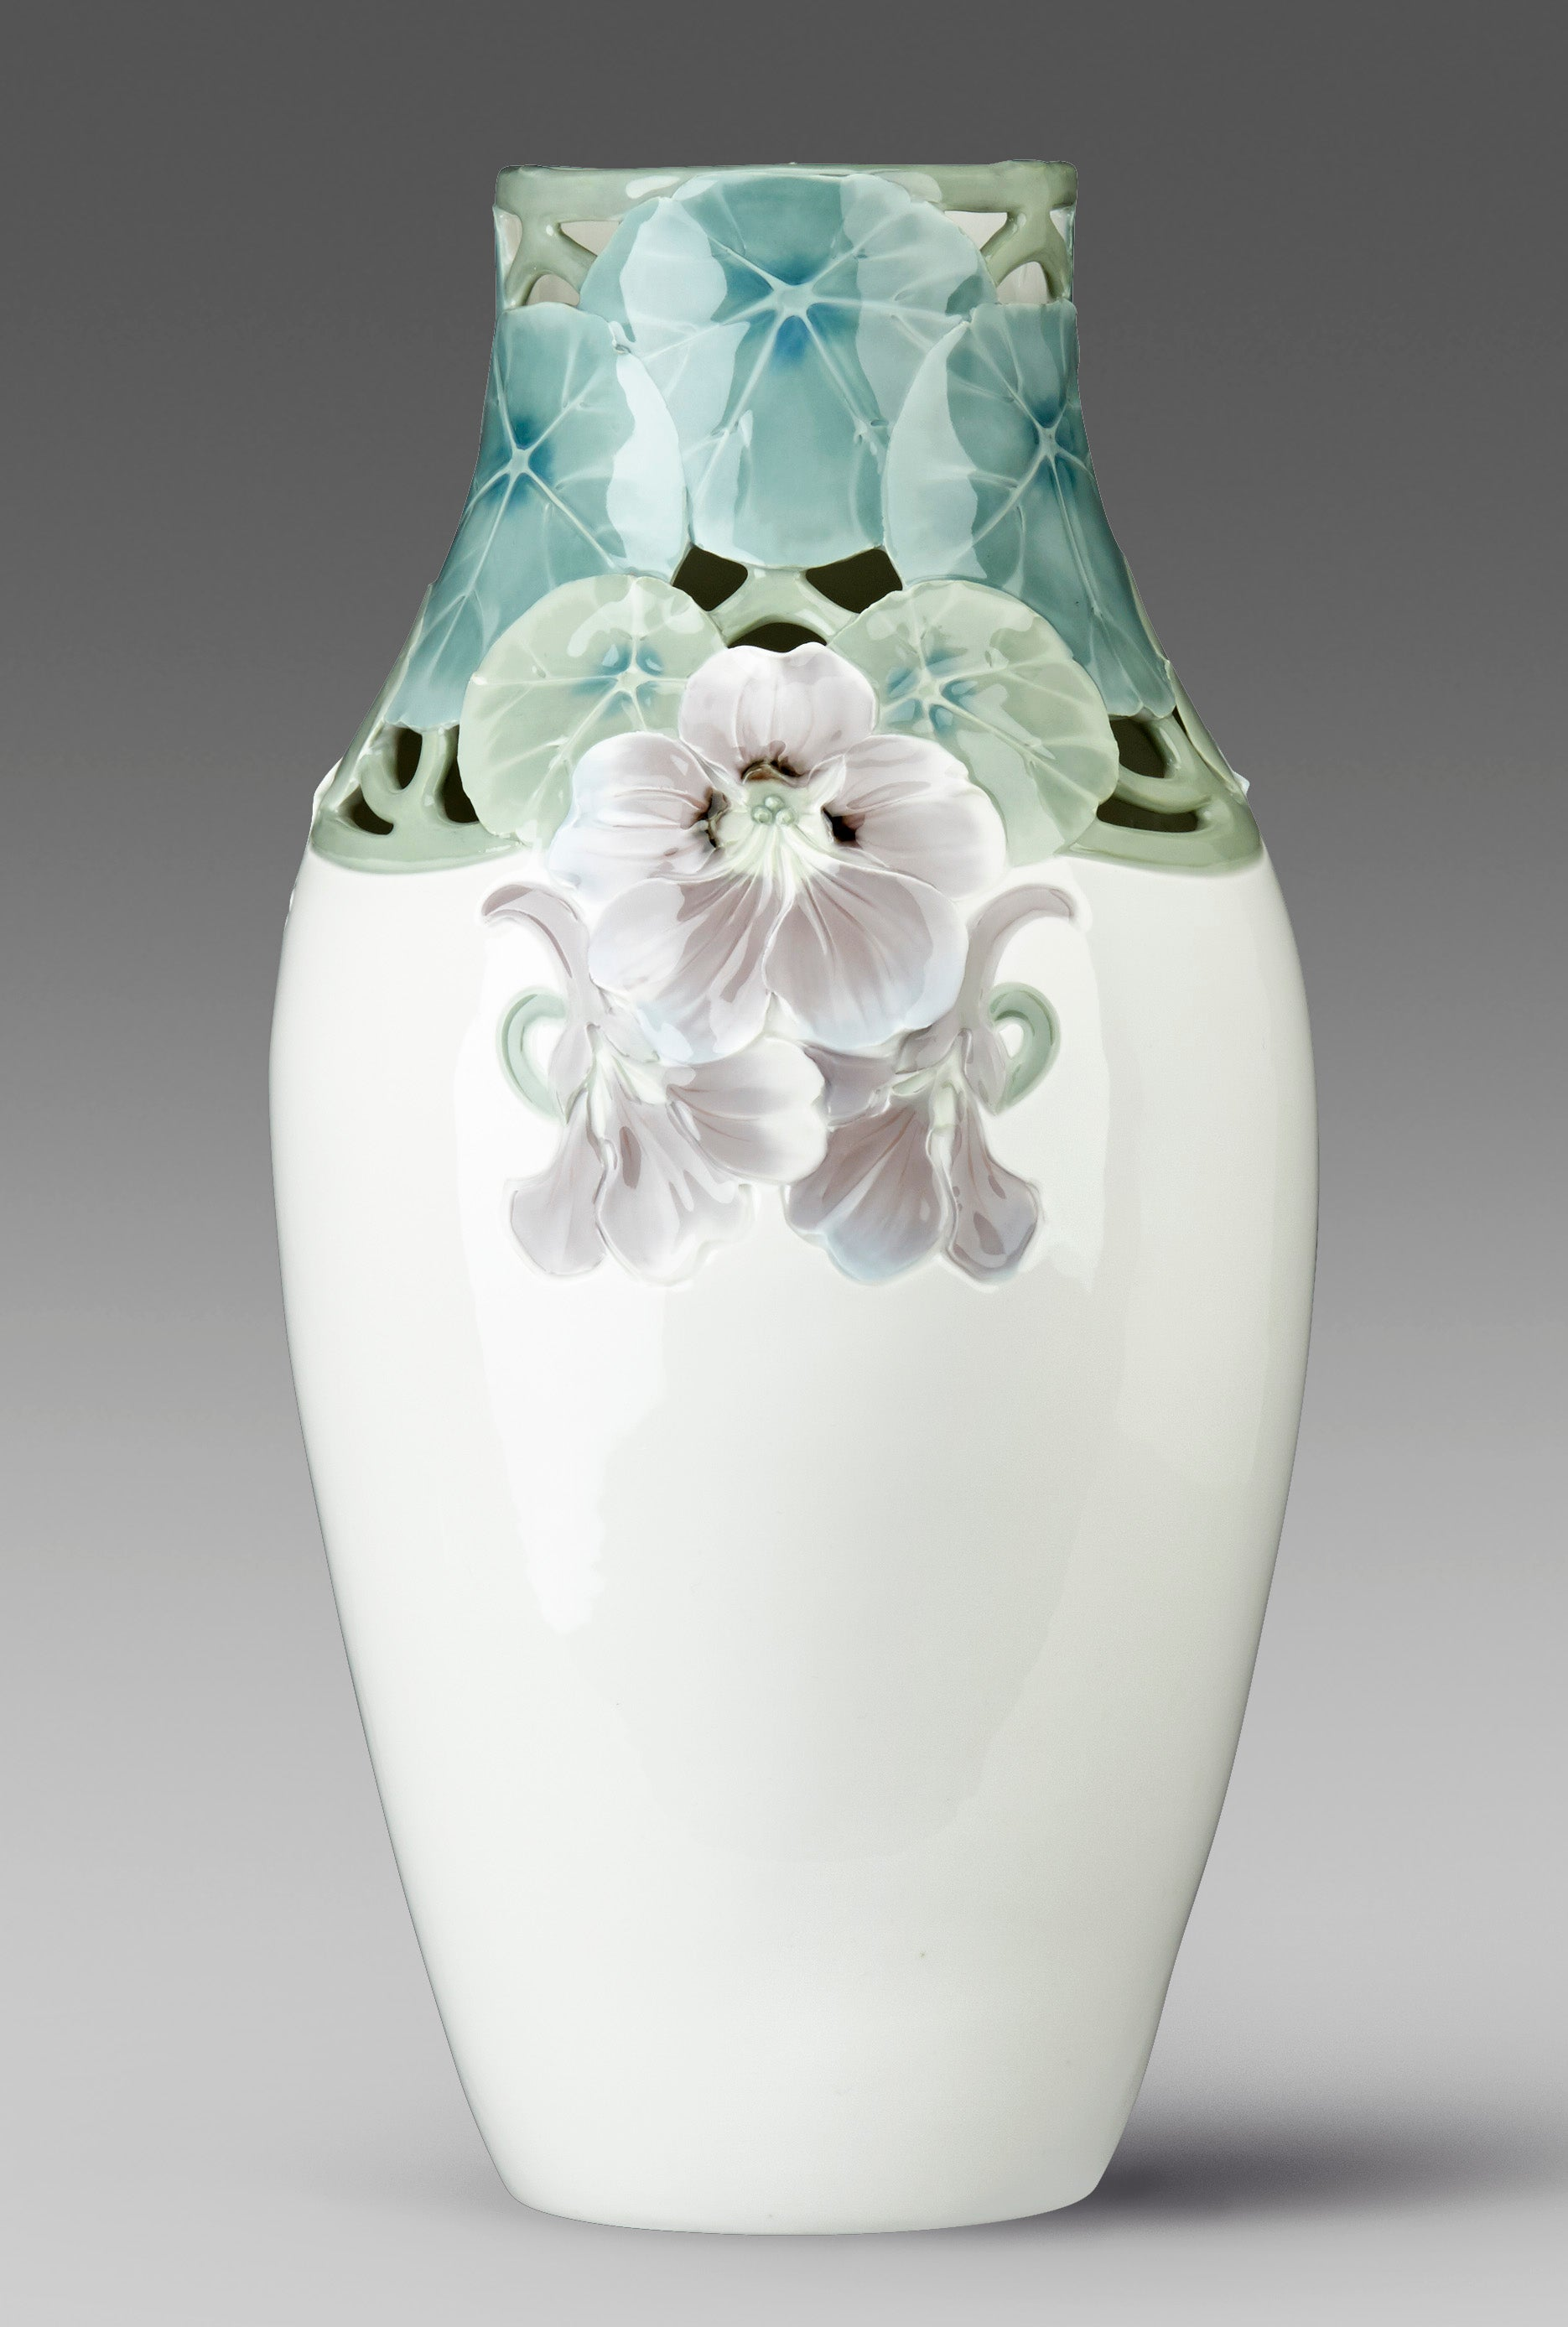 Jugendvas i underglasyrteknik. Karl Lindström för Rörstrand ca 1910. Signerad KL Rörstrand. 42,5cm hög. Art Nouveau vase in underglazed porcelain by Karl Lindström for Rörstrand, around 1910. H: 42,5cm/16,7″